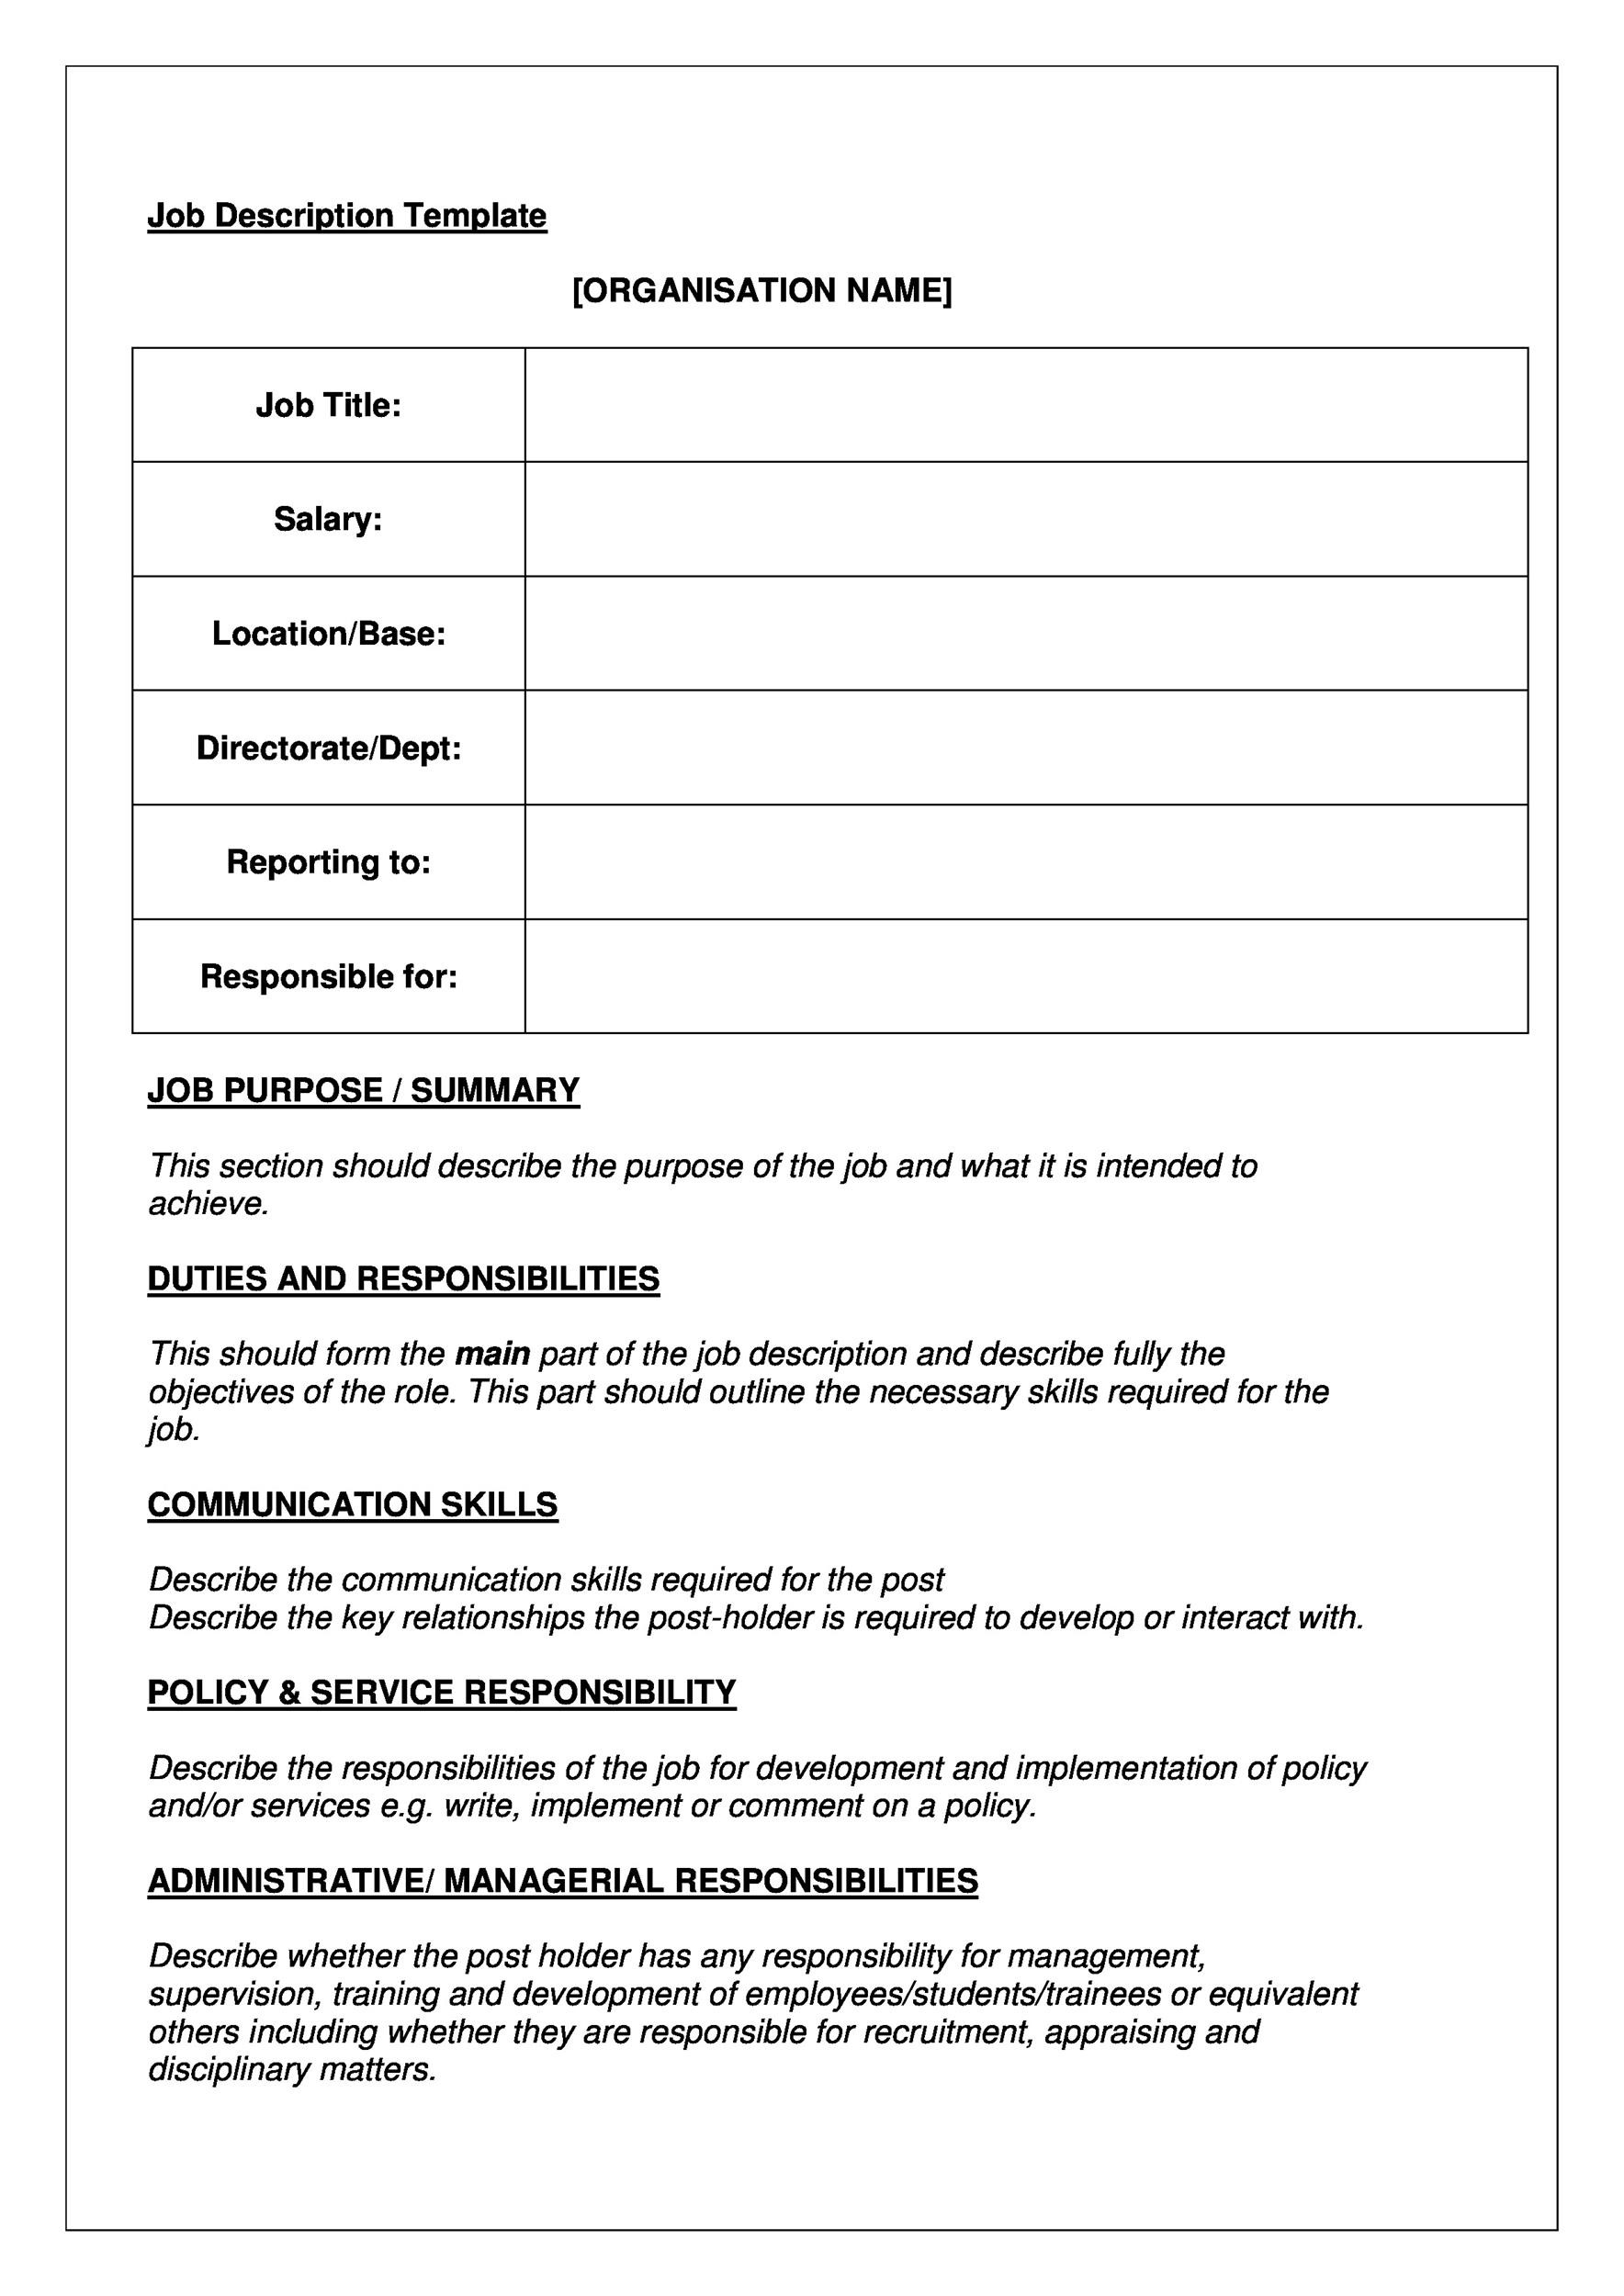 Free Job Description Template 09